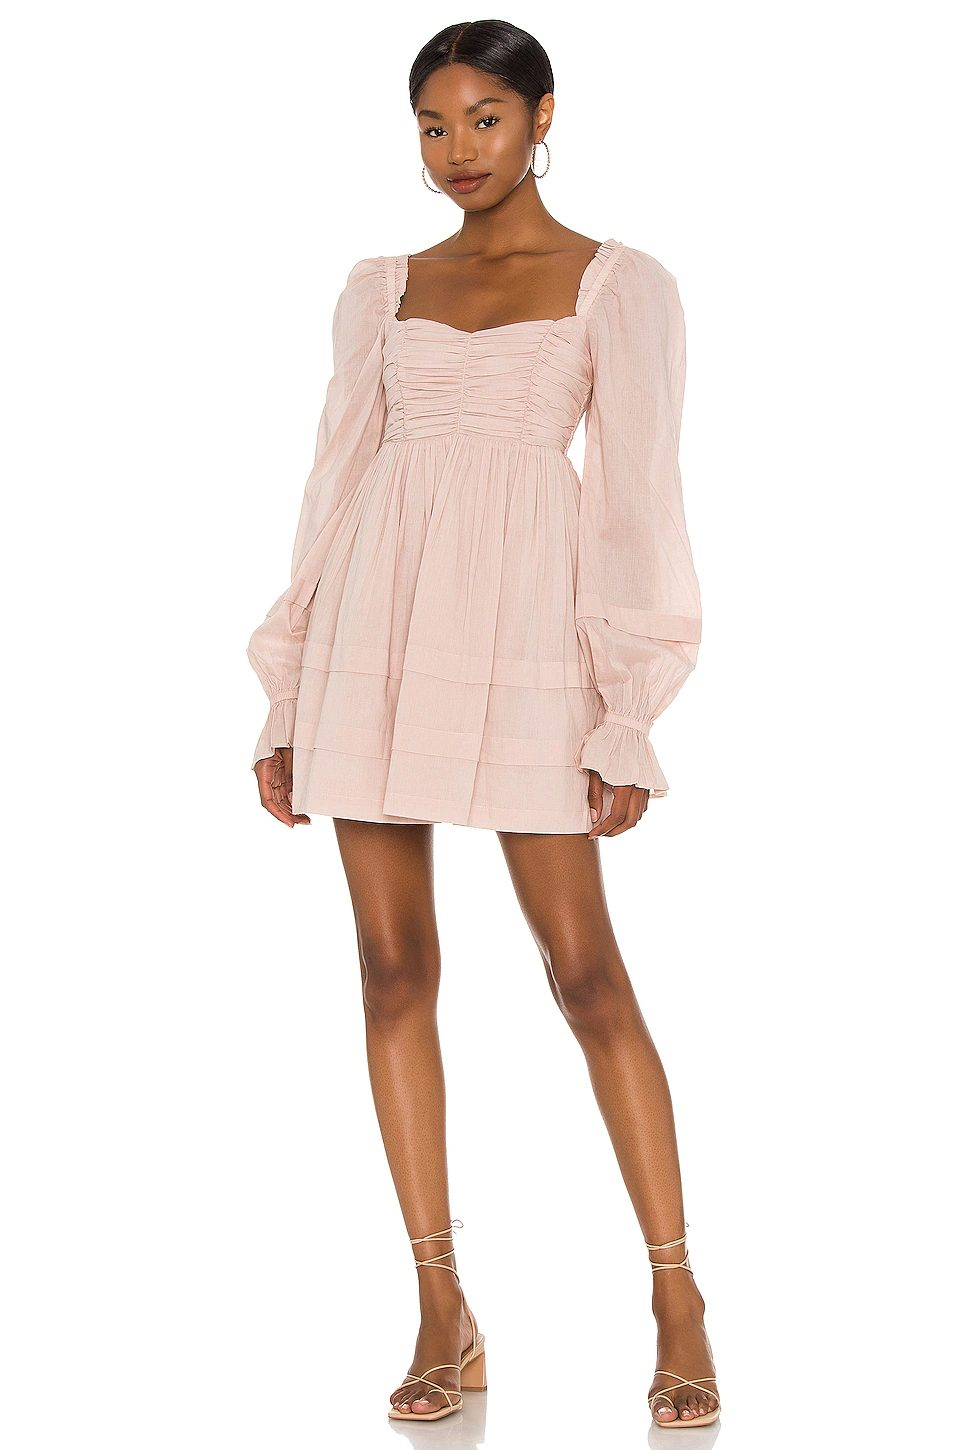 Cute feminine dusty pink dress with puffy sleeves